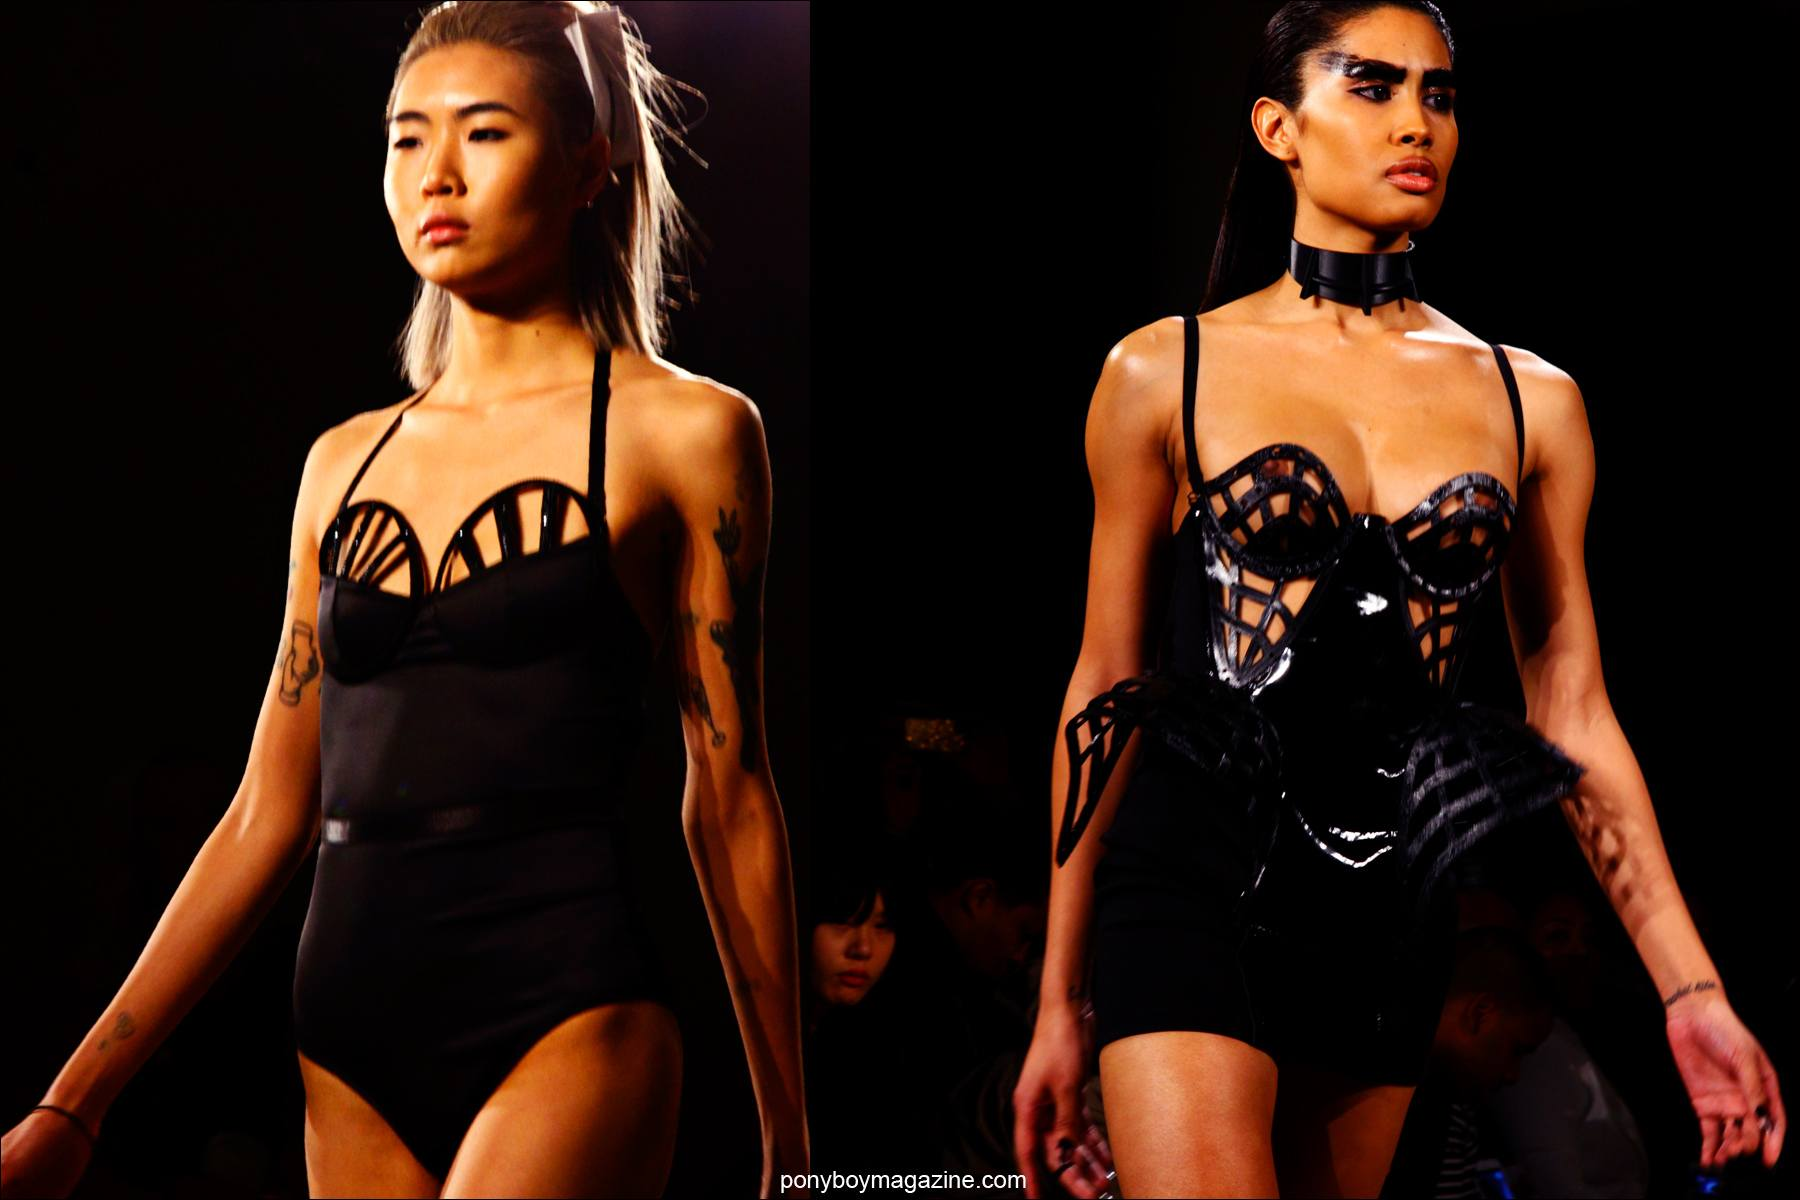 Provocative designs on the Chromat F/W15 runway at Milk Studios. Photos by Alexander Thompson for Ponyboy magazine.